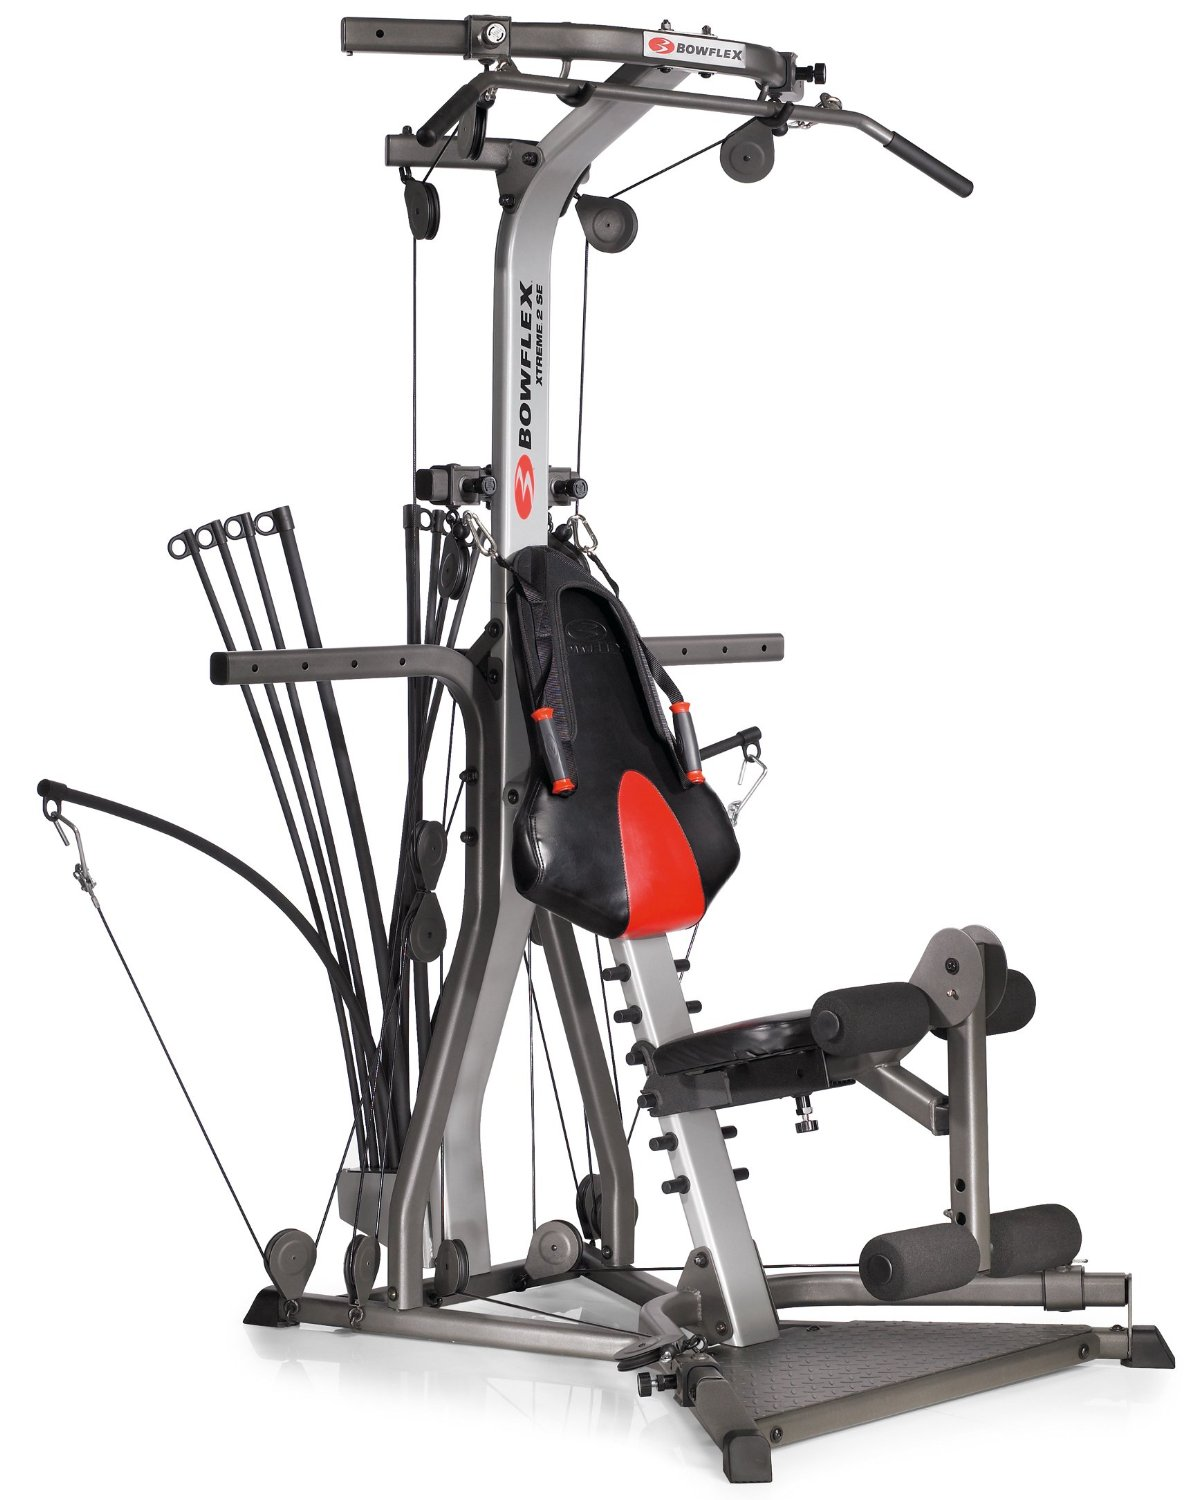 Bowflex Xtreme 2 SE Home Gym Review | wxfitness.com